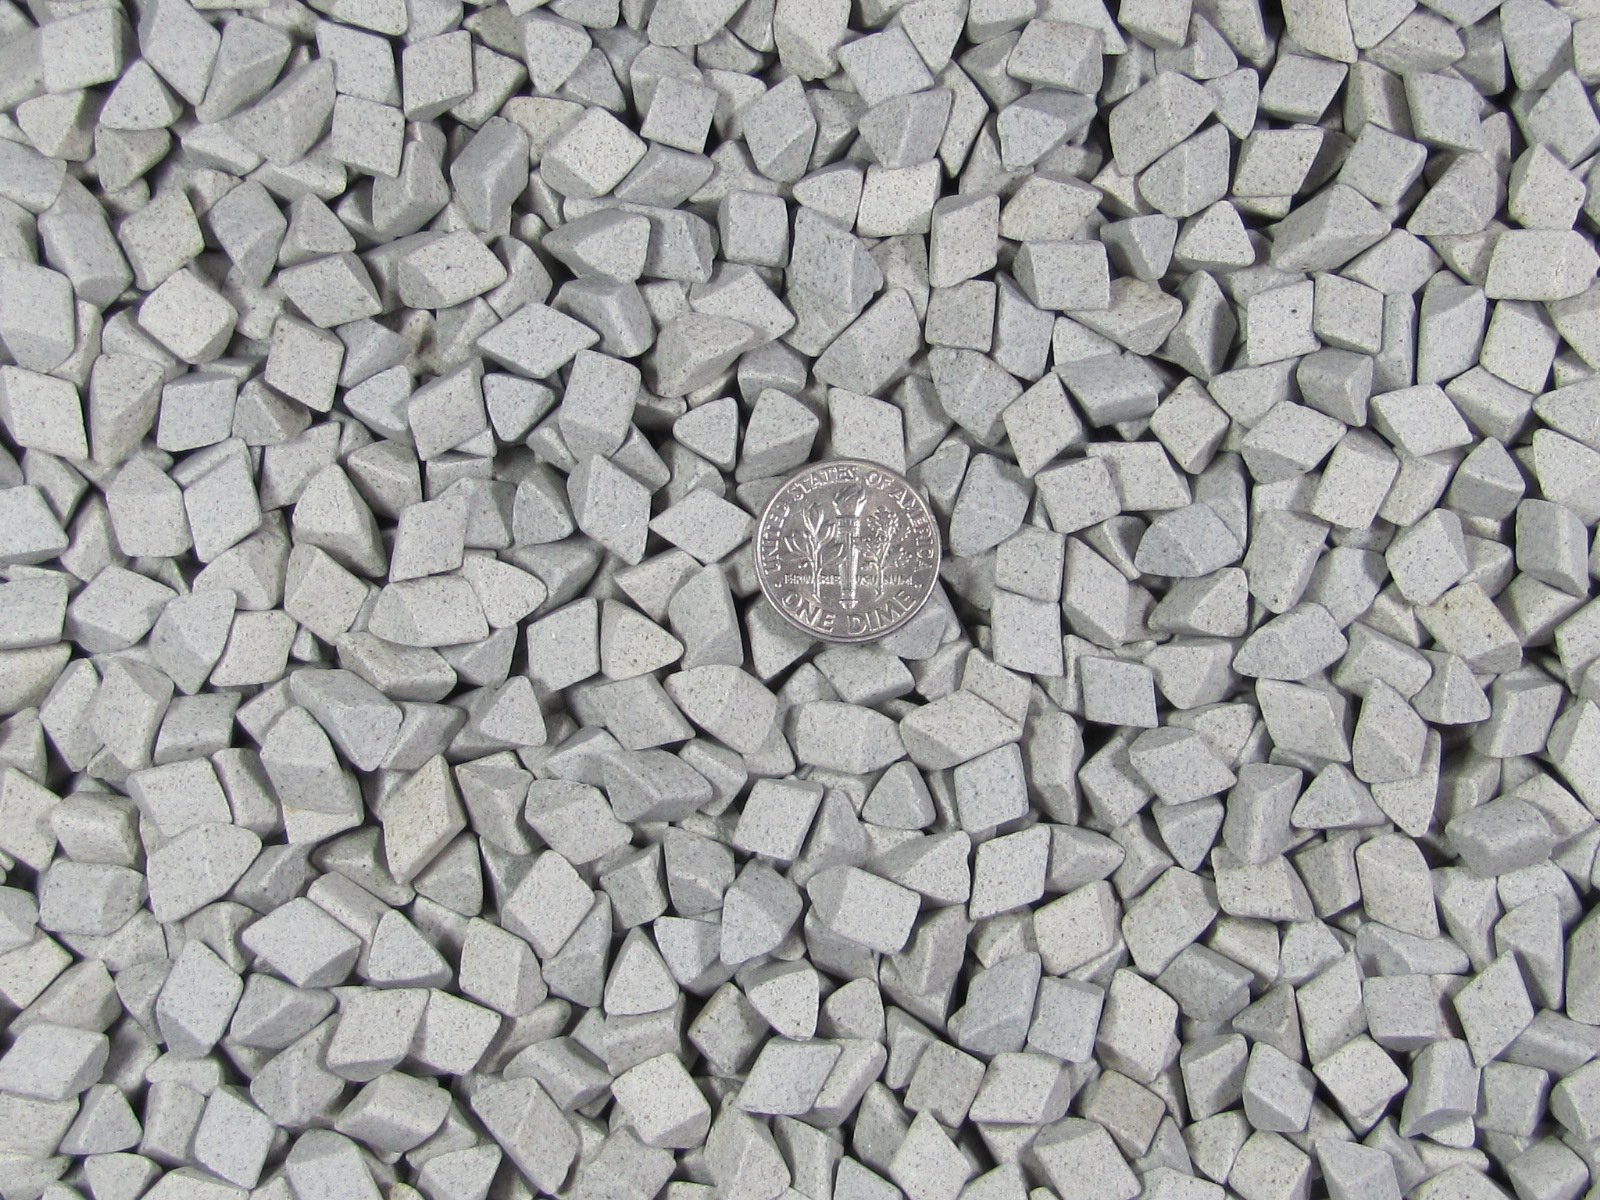 5 Lb. 1/4'' X 1/4'' Fast Cutting Triangle Abrasive Ceramic Porcelain Tumbling Tumbler Tumble Media